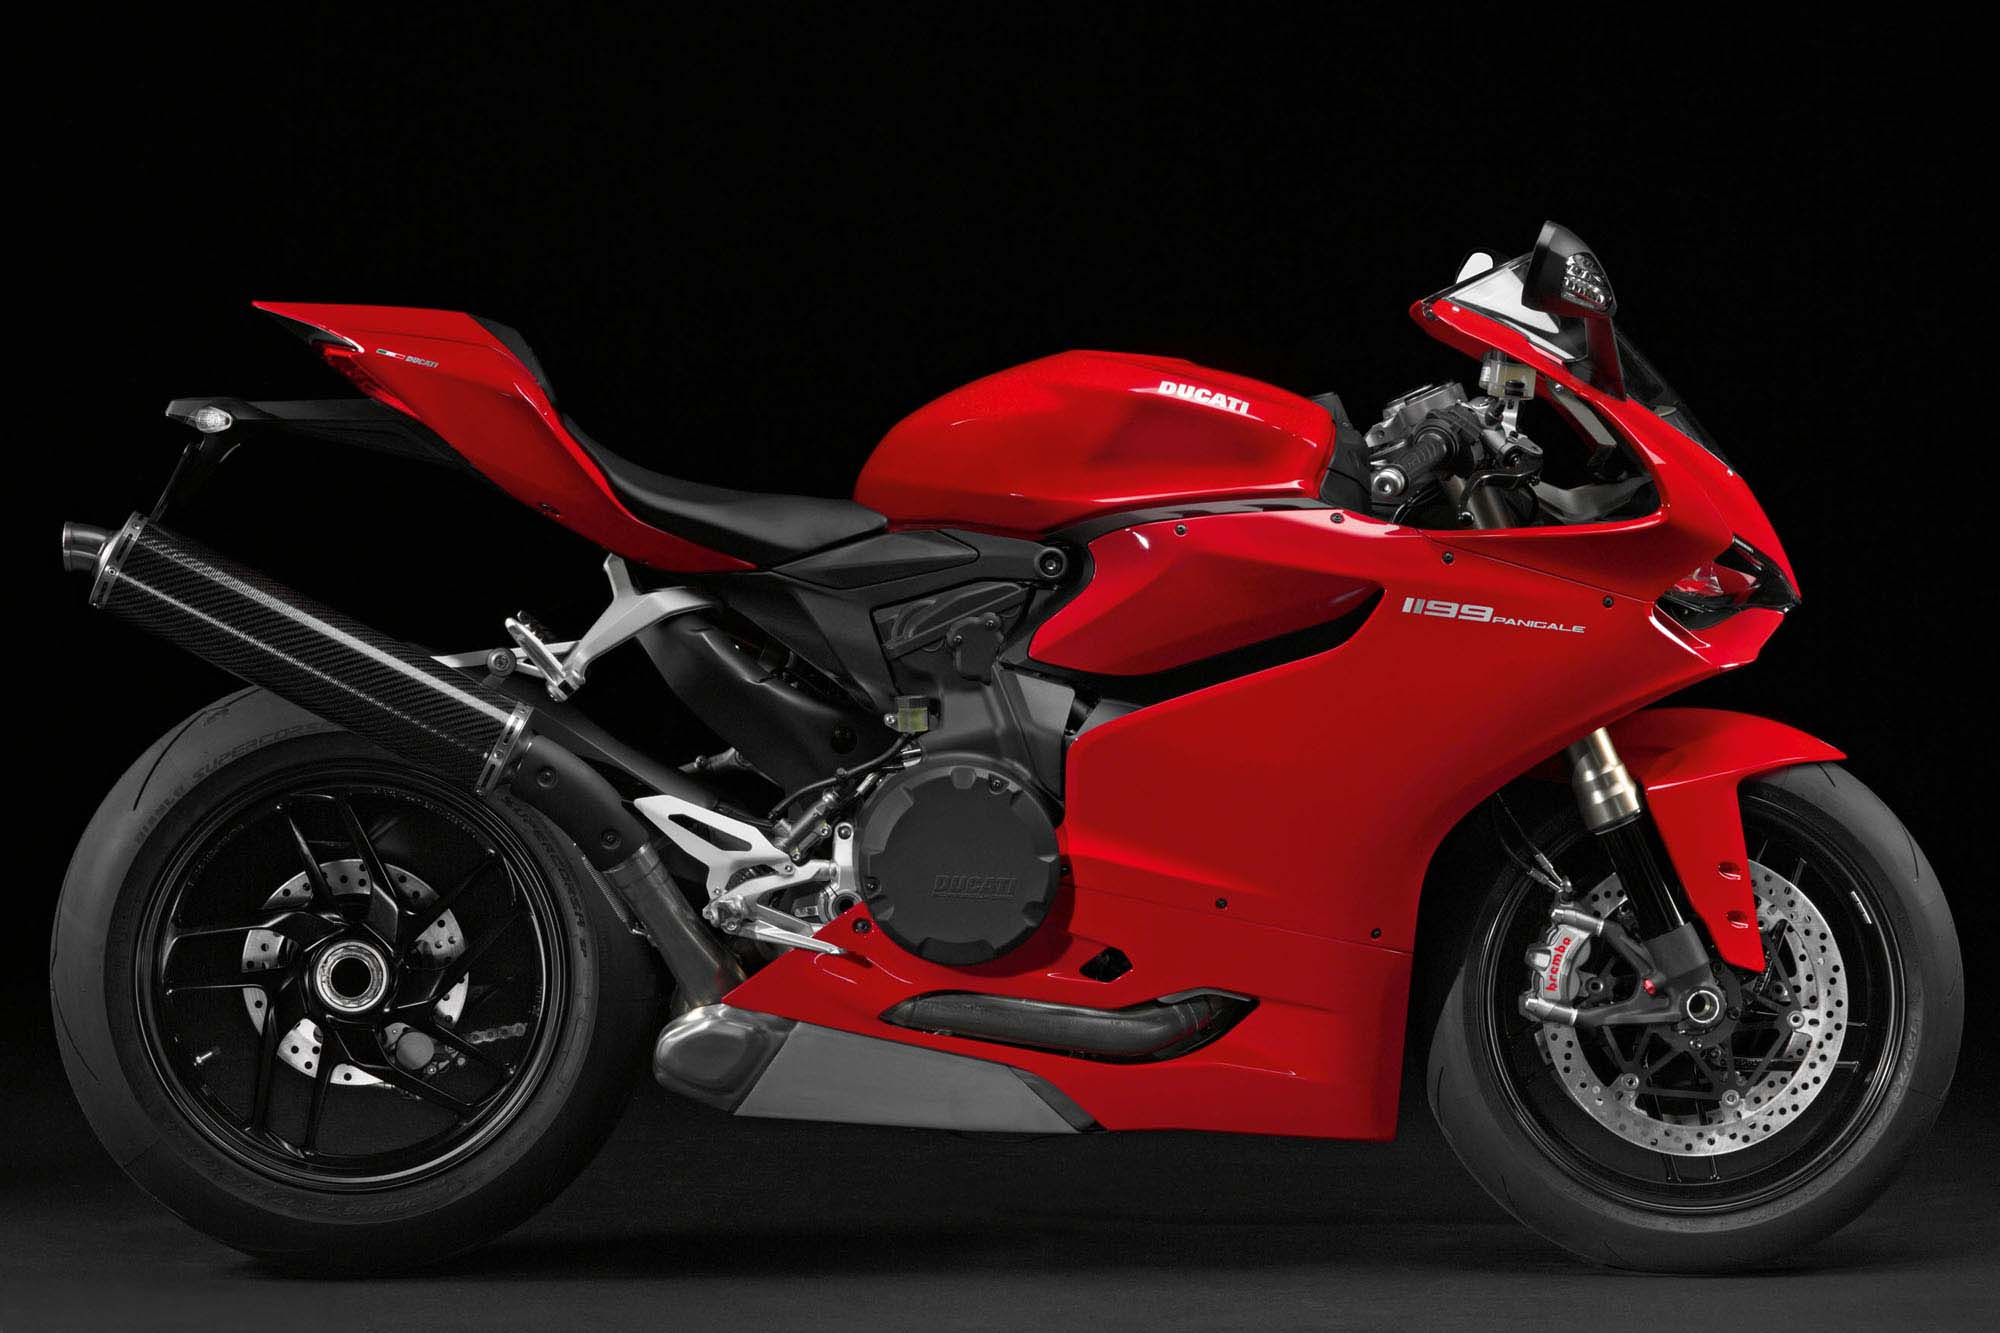 Too Loud For Japan The Ducati 1199 Panigale Gets Ruined